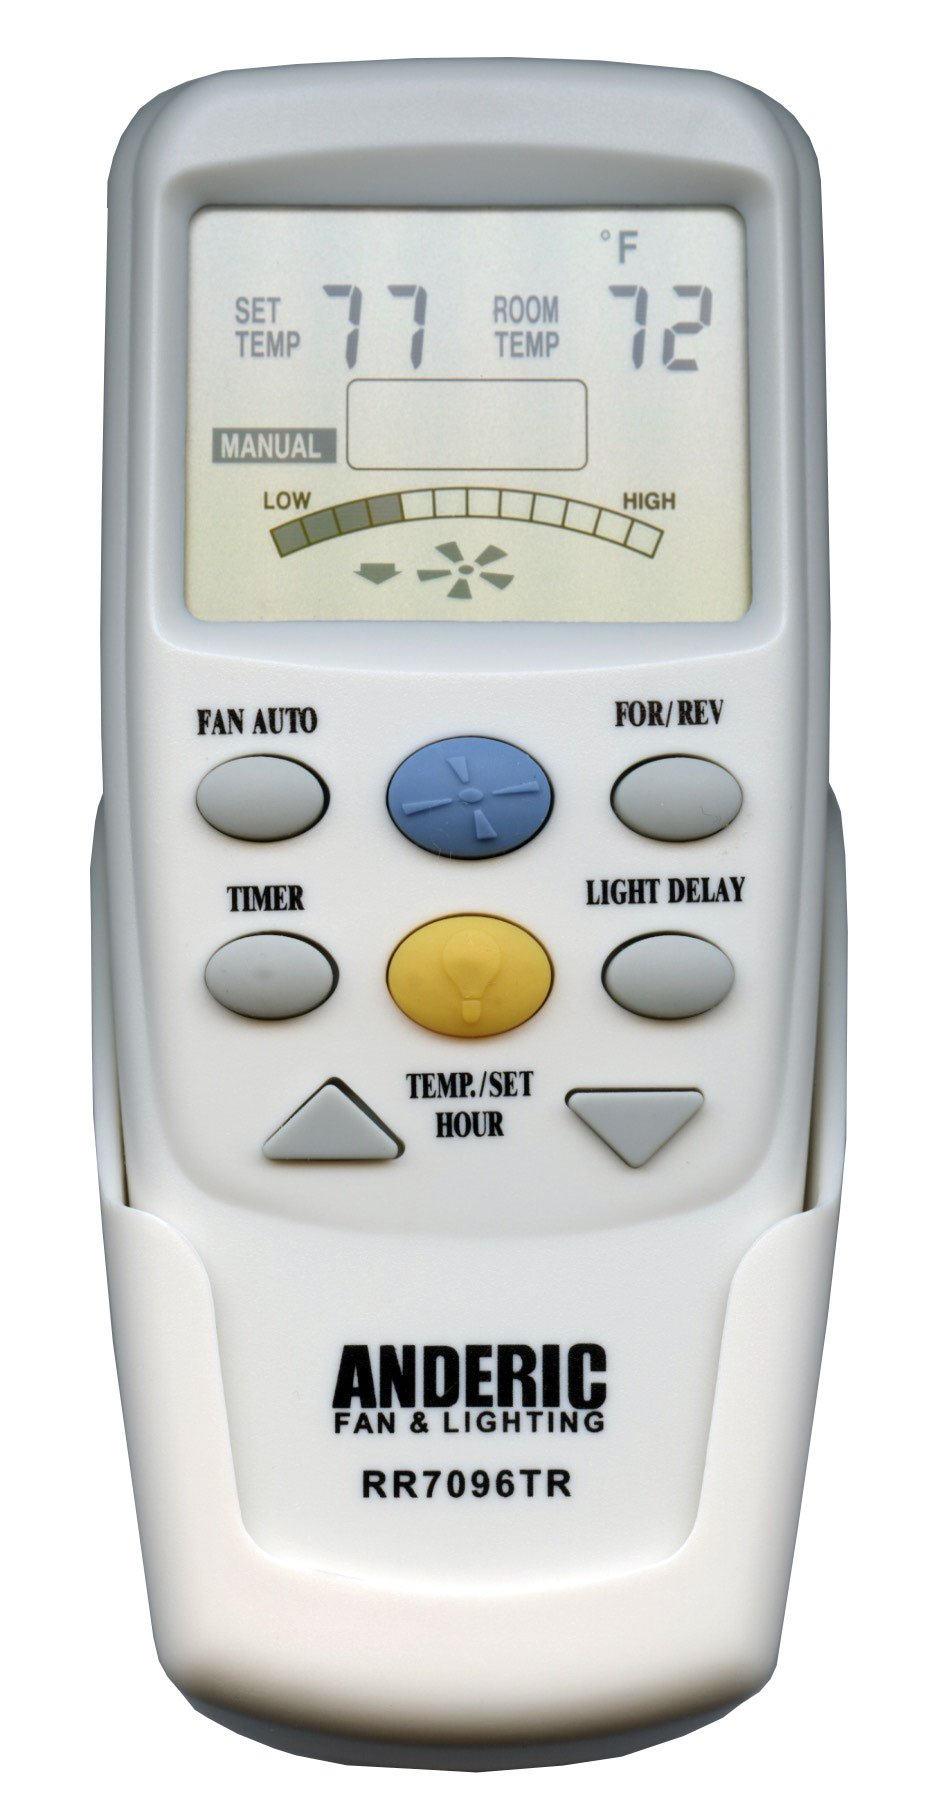 Anderic Replacement for Hampton Bay CHQ7096T with''Reverse'' key Thermostatic Remote Control for Hampton Bay Ceiling Fans (FCC ID: CHQ7096T, UC7096T, CHQ8BF7096T, CHQ8BT7096T) - RR7096TR